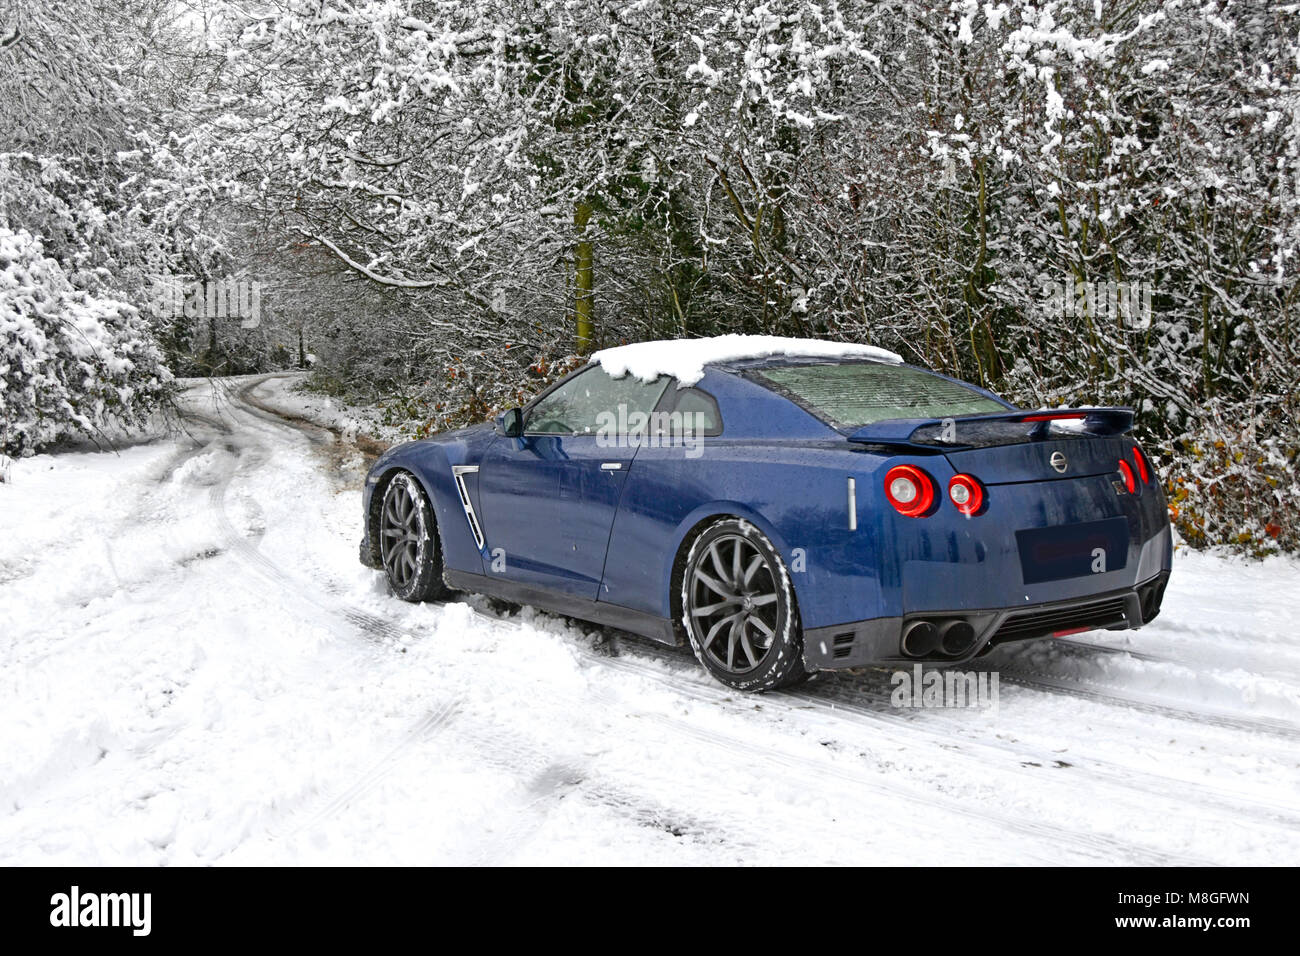 Poor weather for driving Nissan car along snow covered country lane in winter snow scene in snowy rural Brentwood - Stock Image